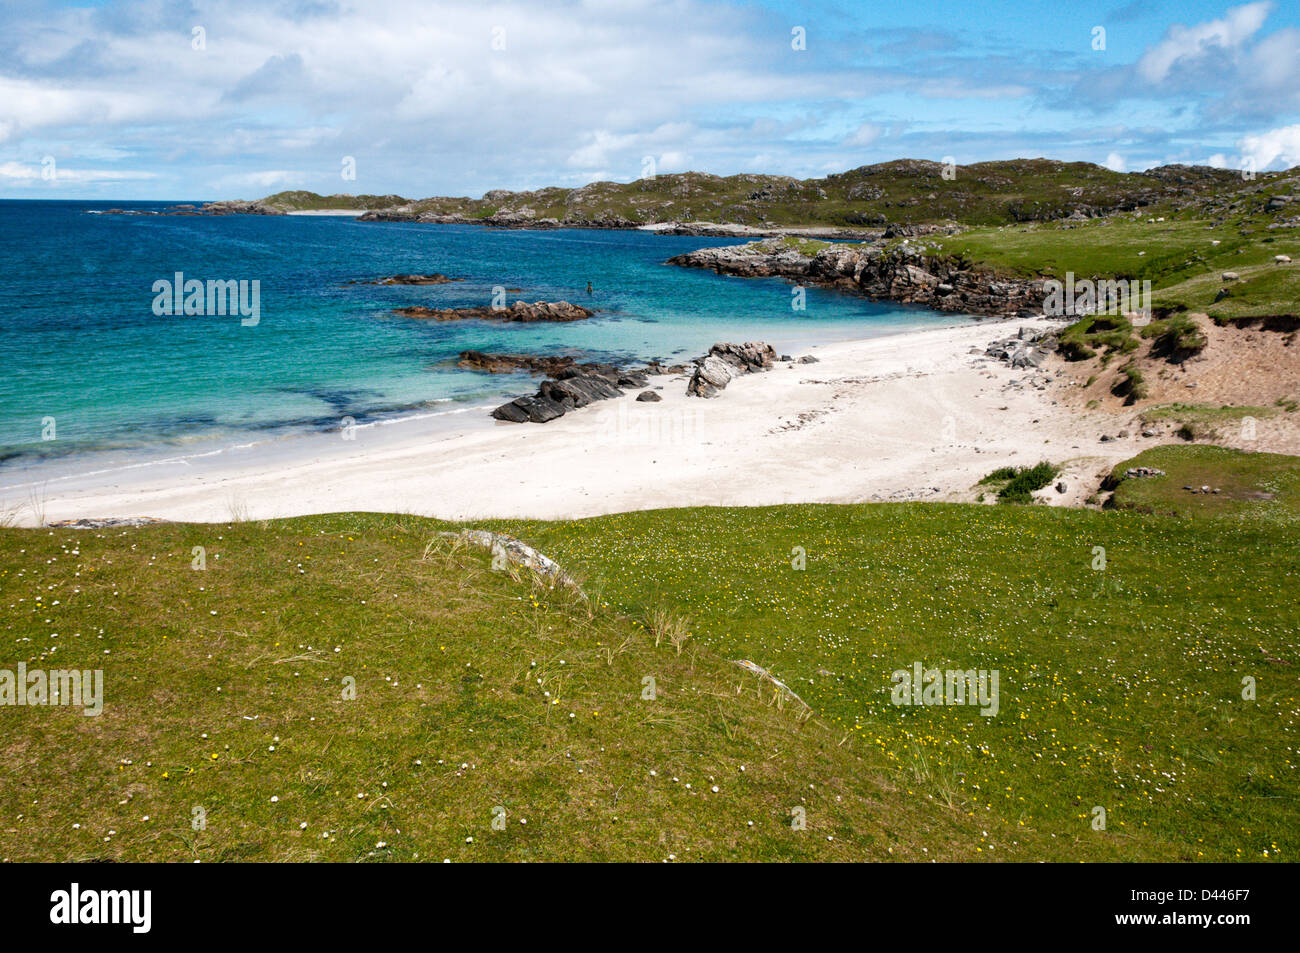 Camas Bostadh bay and beach on Great Bernera in the Outer Hebrides. - Stock Image